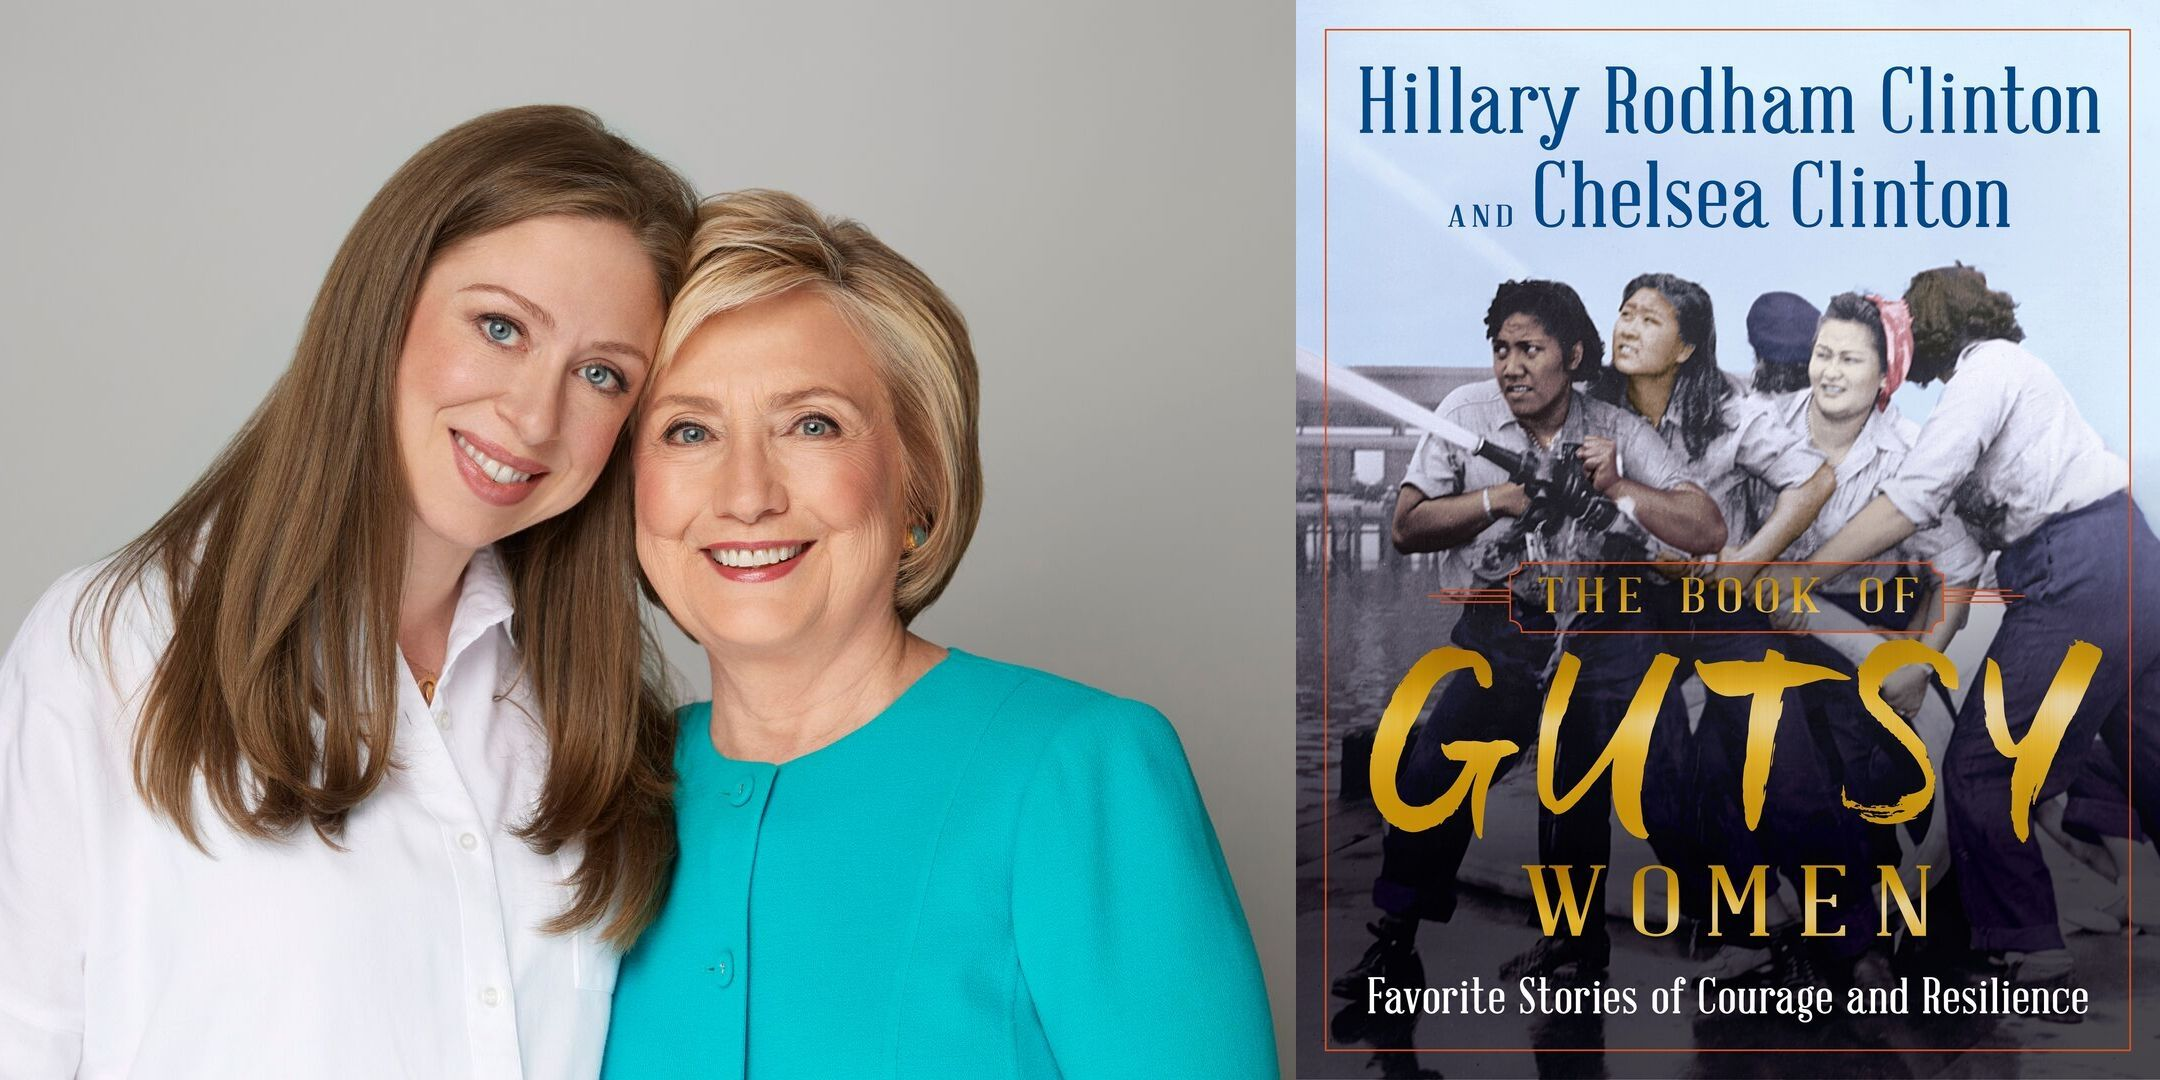 Hillary Rodham Clinton and Chelsea Clinton and the cover of their book